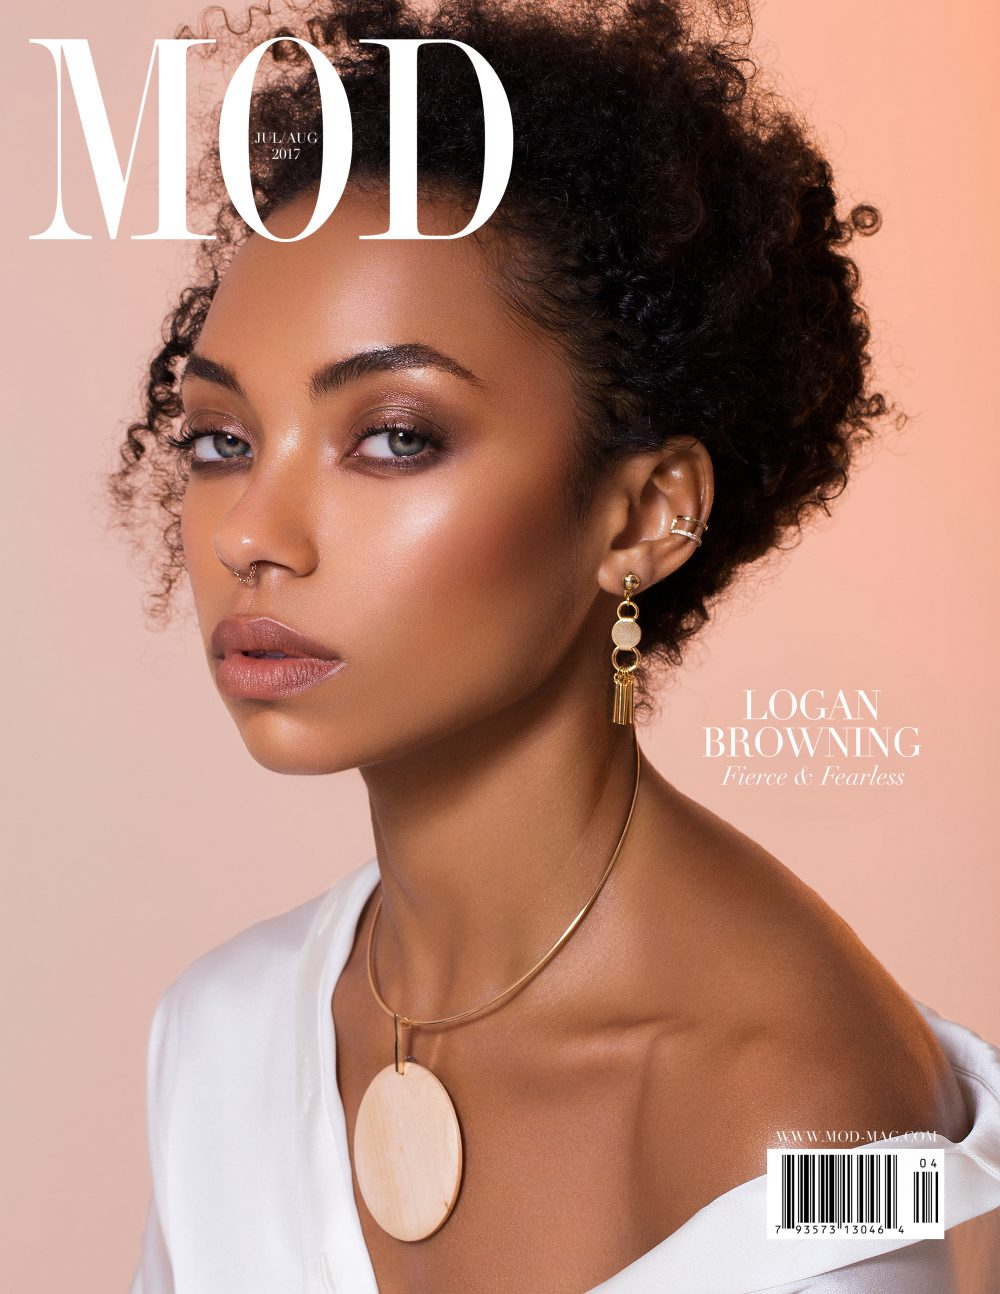 MOD Magazine Cover Logan Browning Photoshoot